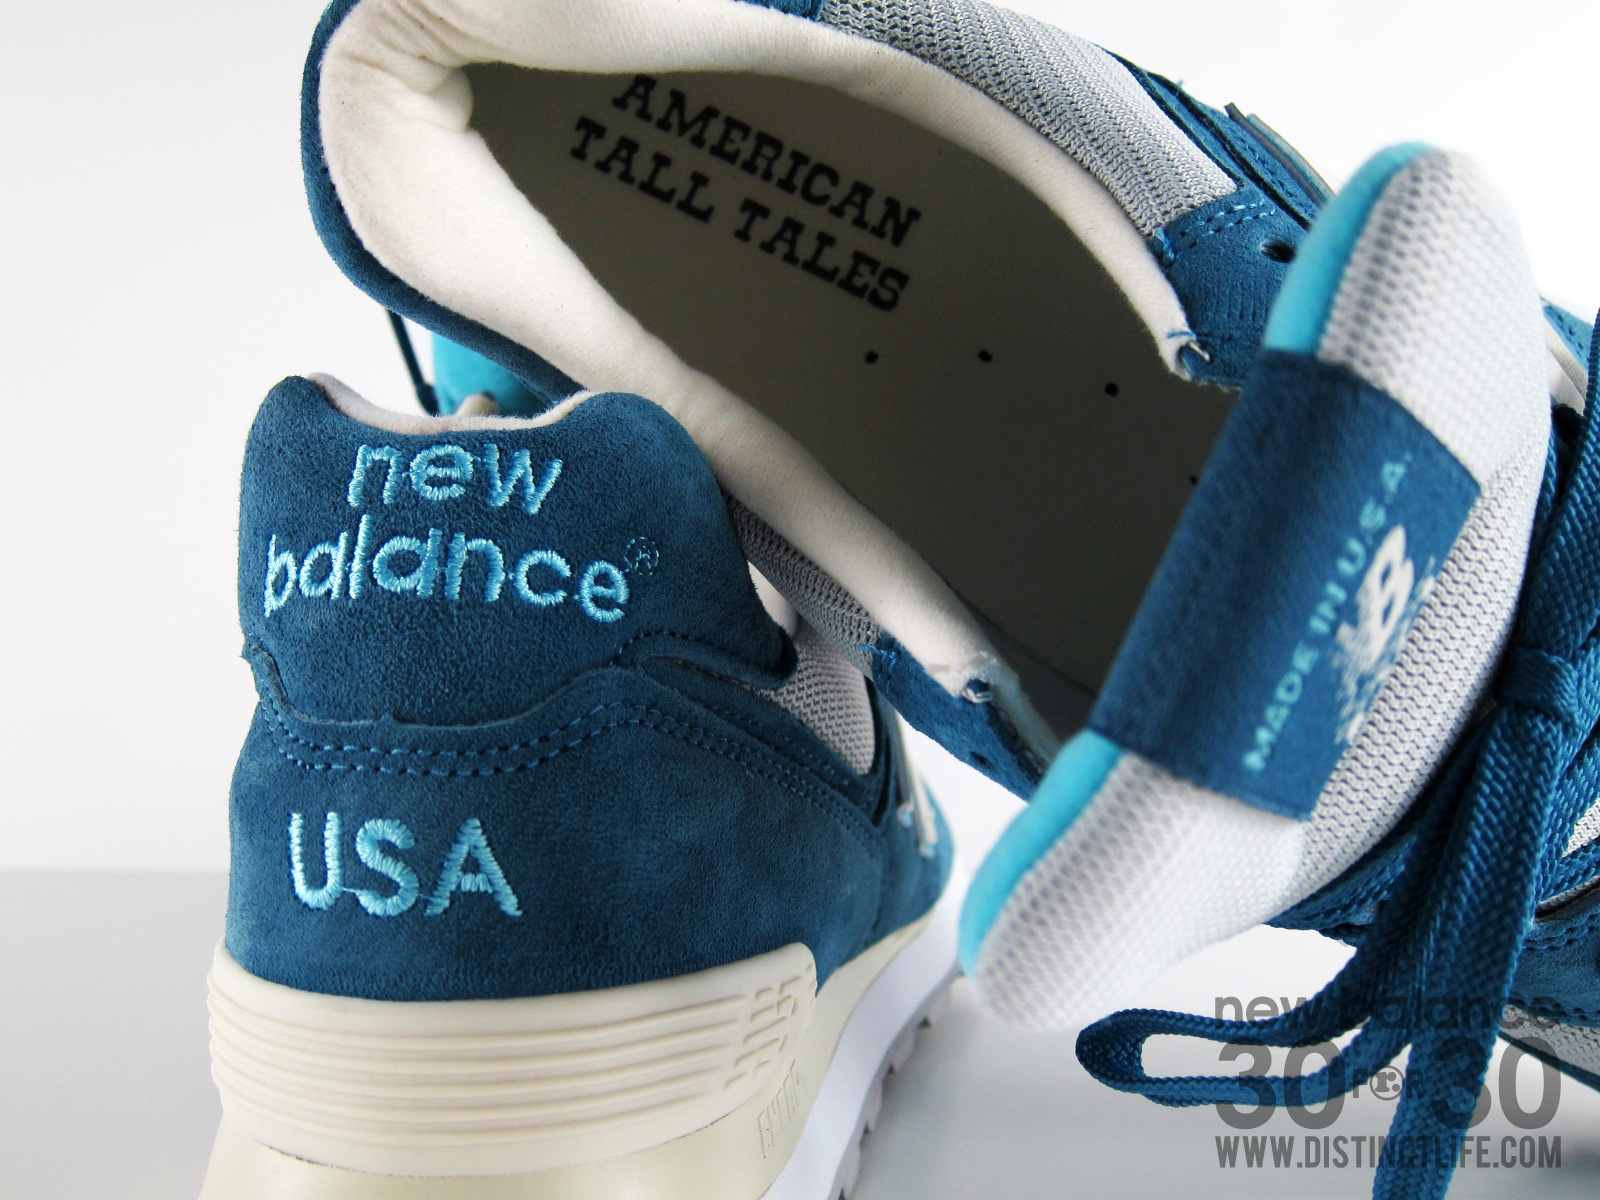 Preview New Balance M574box American Tall Tale